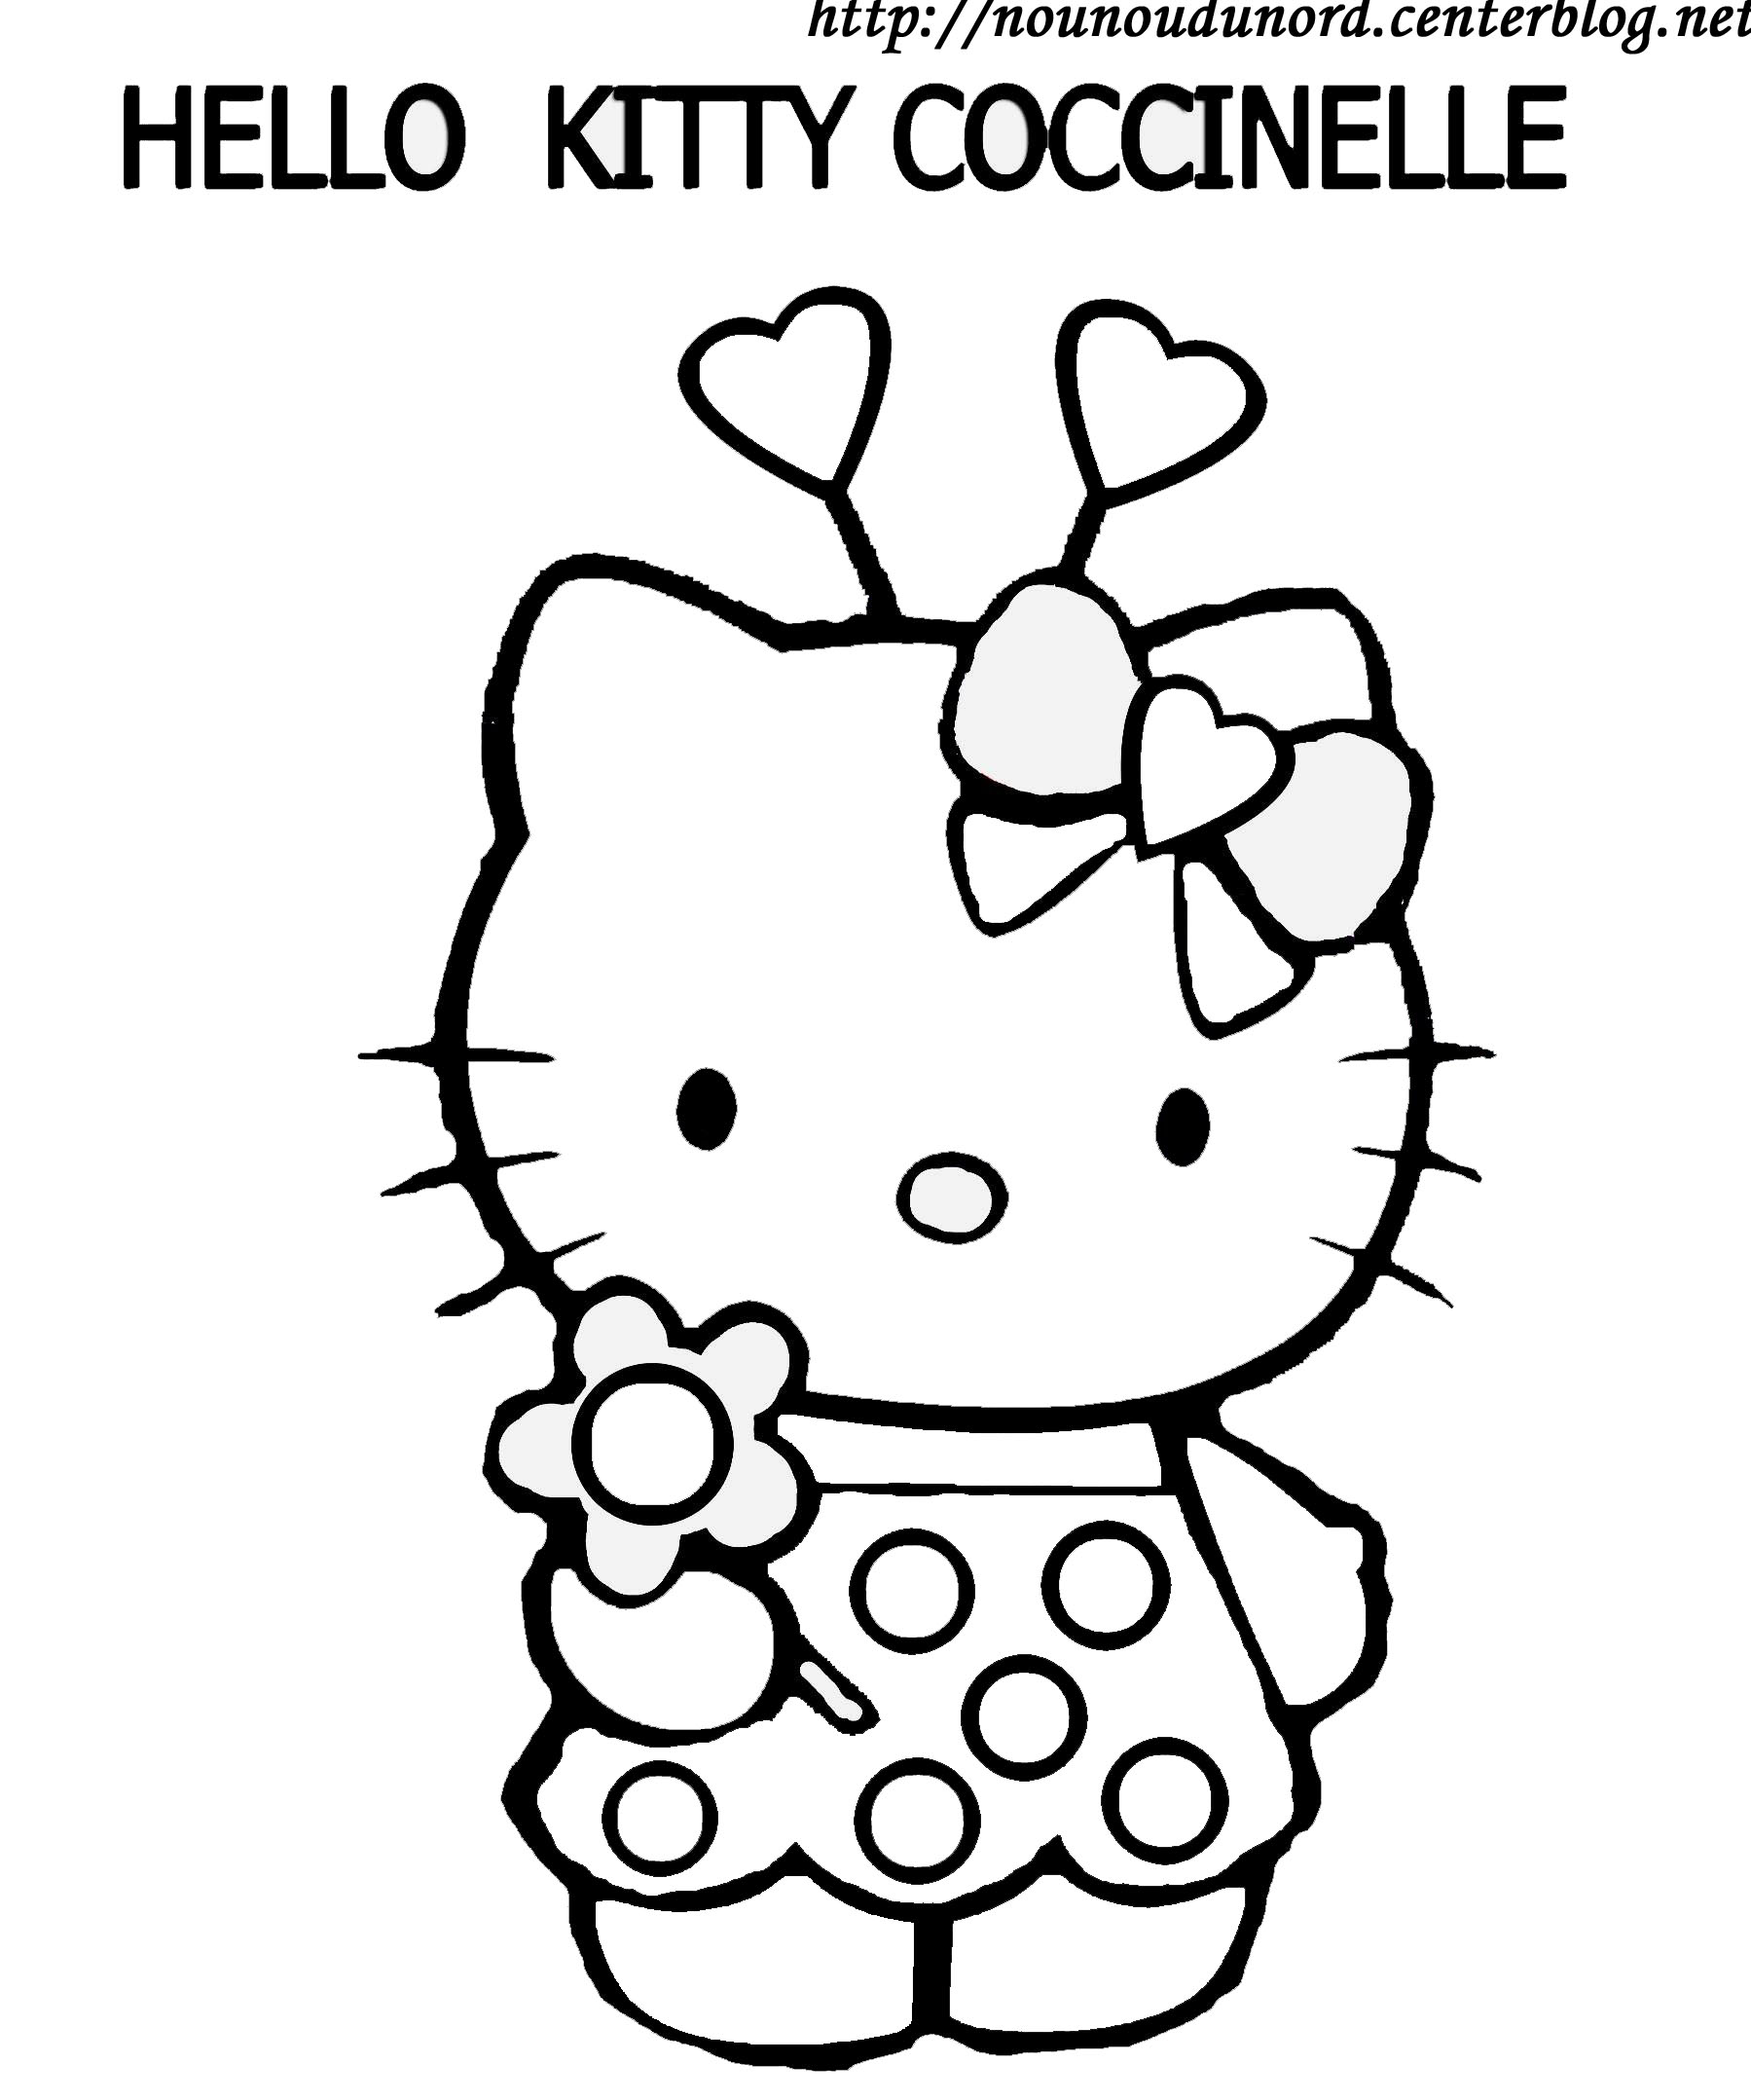 18 dessins de coloriage hello kitty hugo l 39 escargot imprimer - Coloriage en ligne hugo l escargot ...